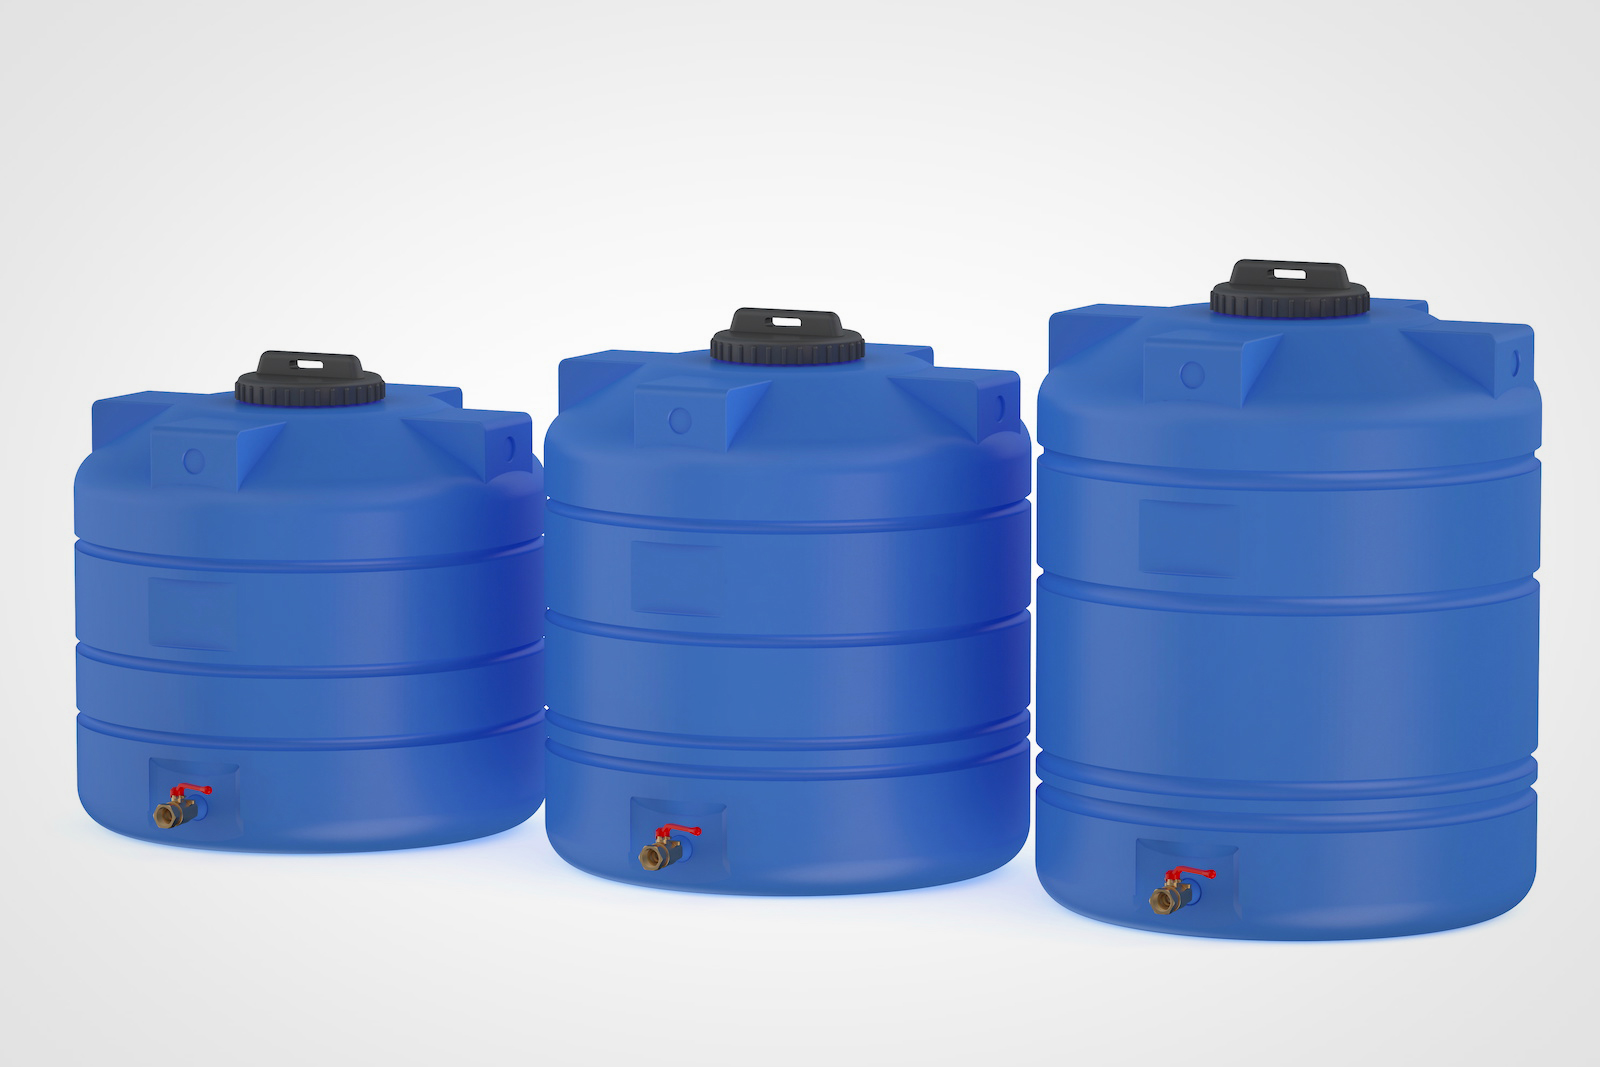 Three large blue emergency water storage containers